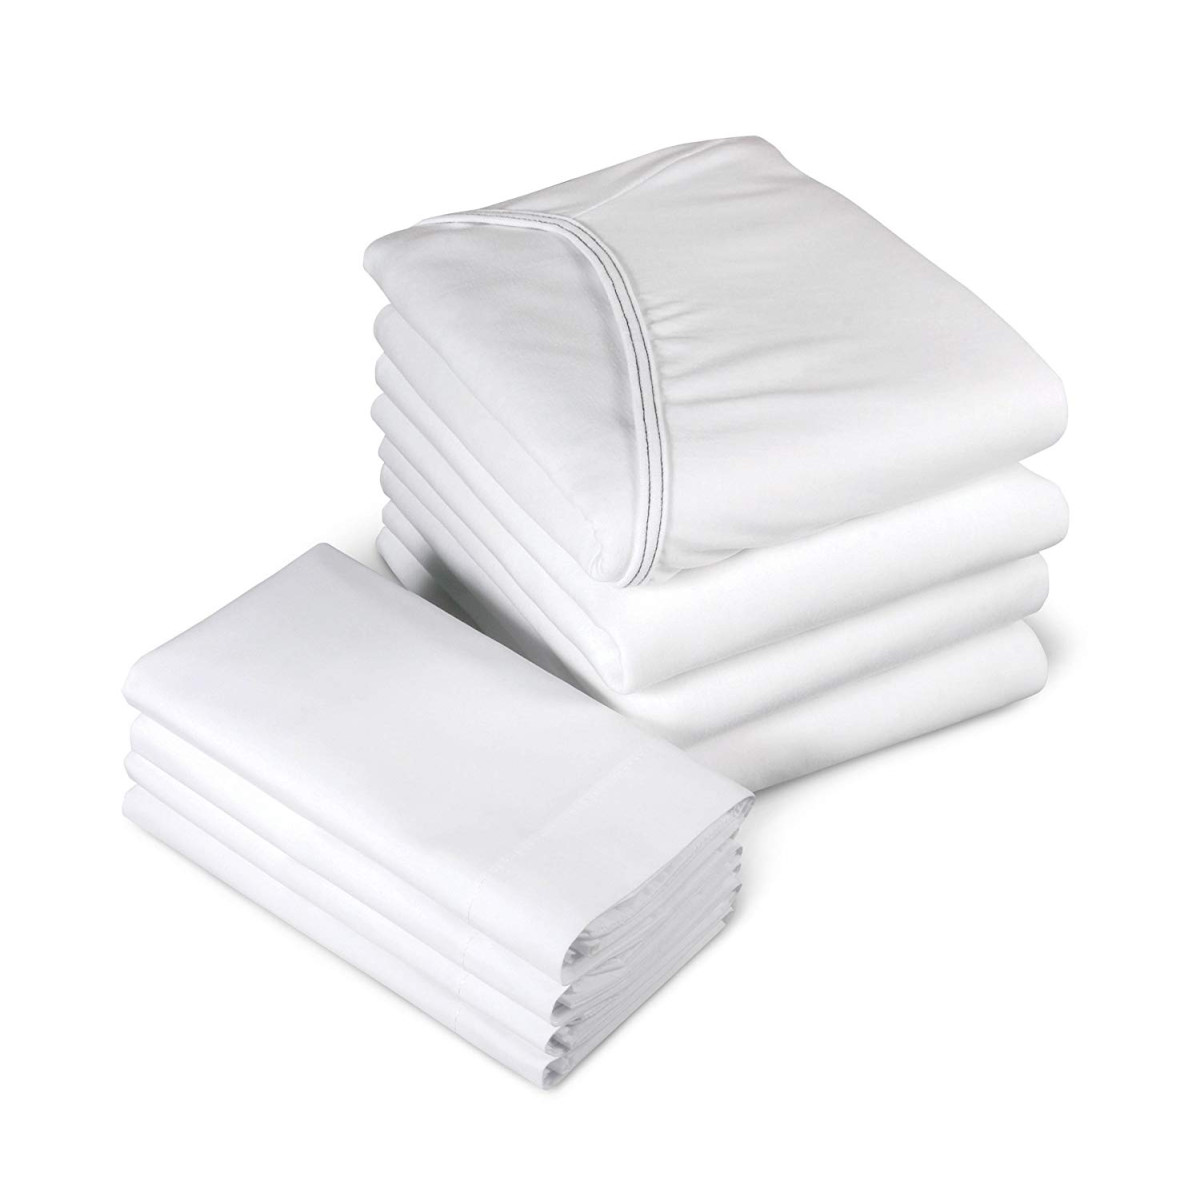 Medline Bed Premium Soft Span Jersey Knit Fitted Contour Hospital Sheet